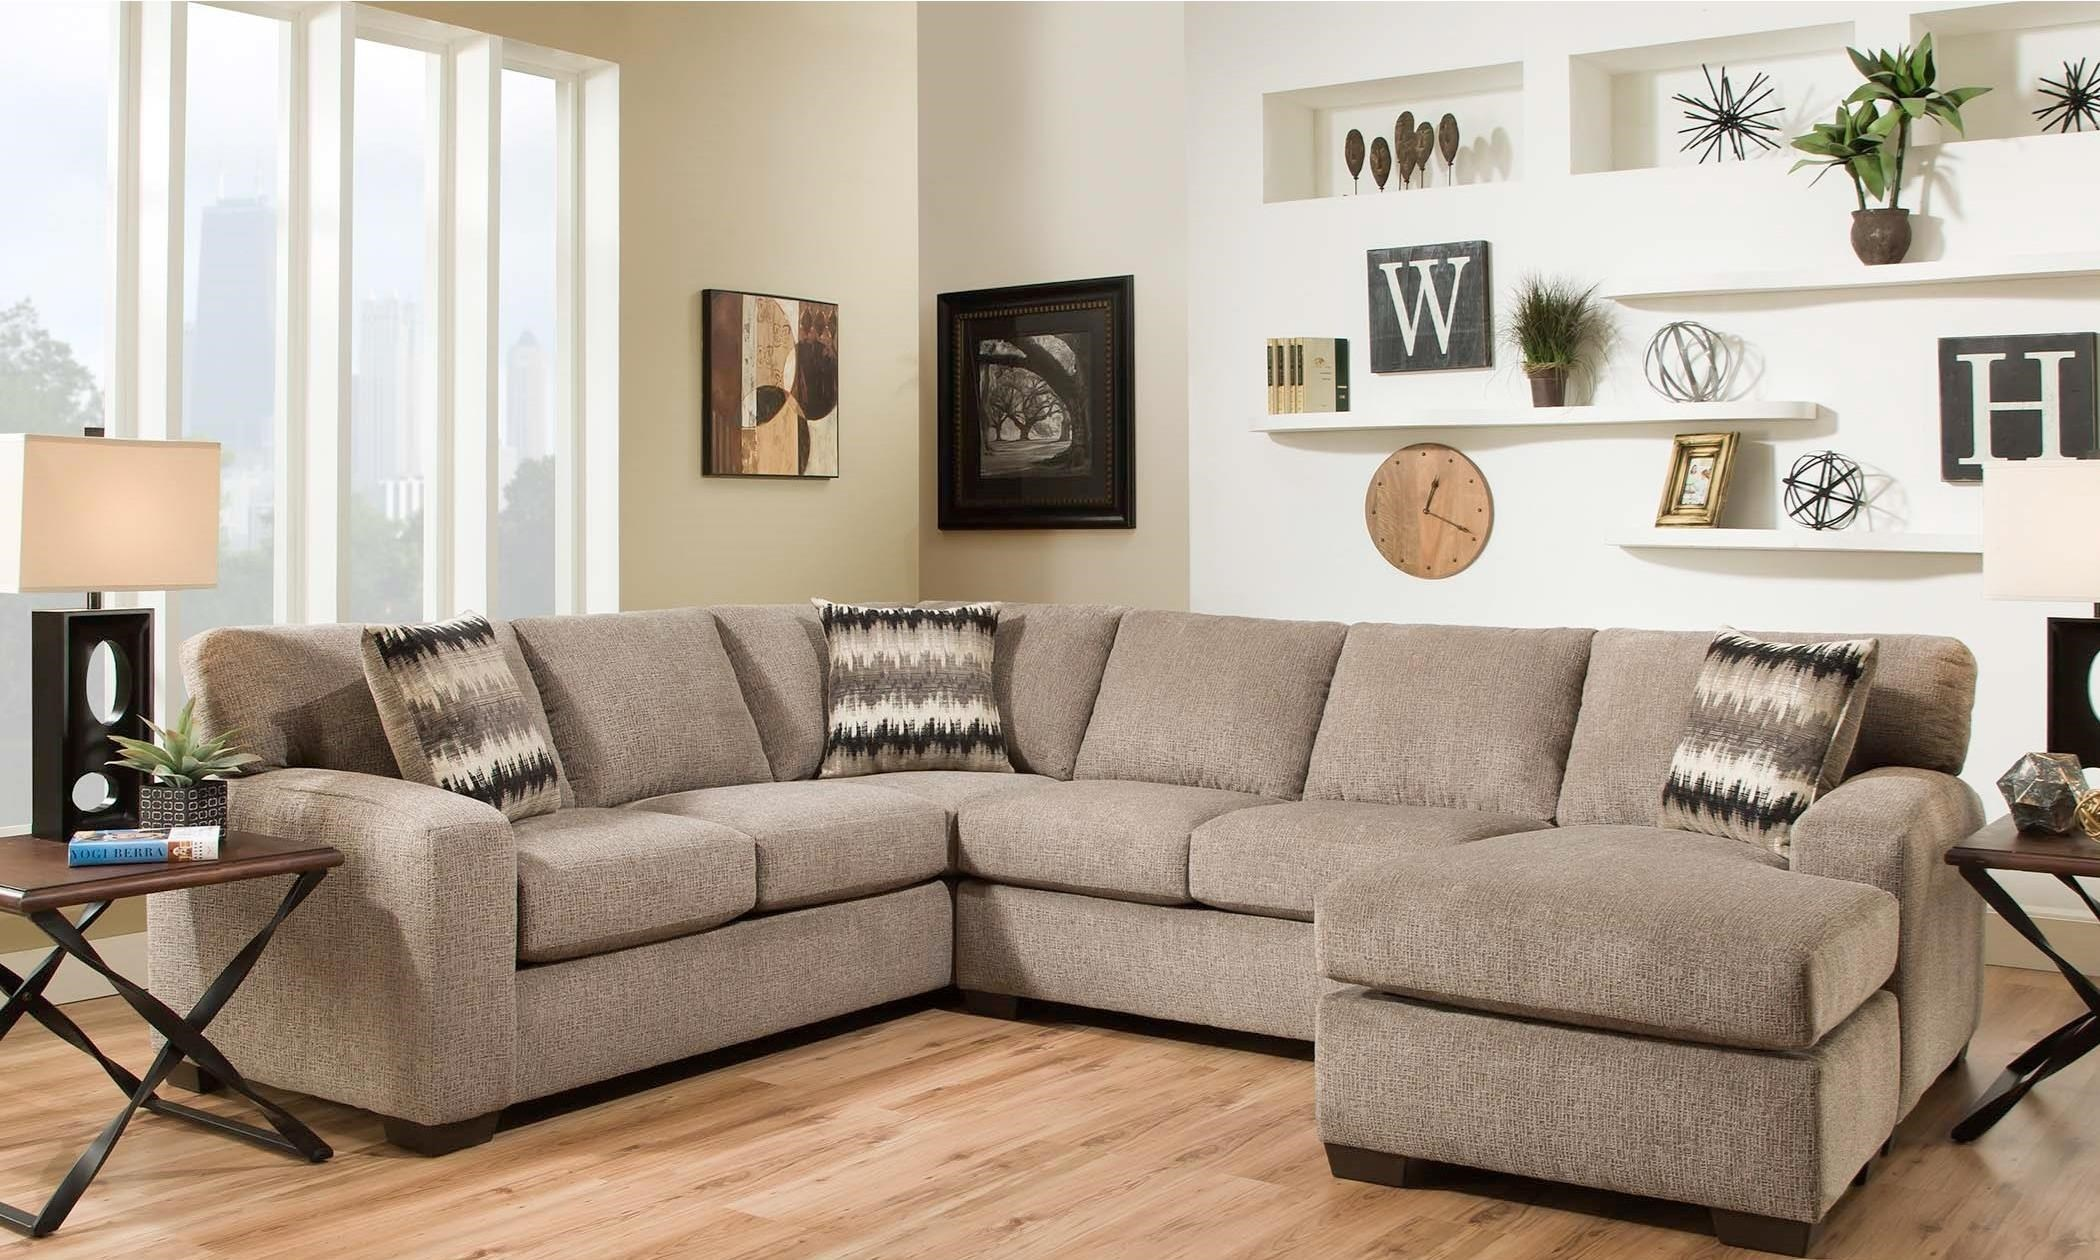 American Furniture 5250 Sectional Sofa - Seats 5  sc 1 st  Wilcox Furniture : american furniture sectional - Sectionals, Sofas & Couches